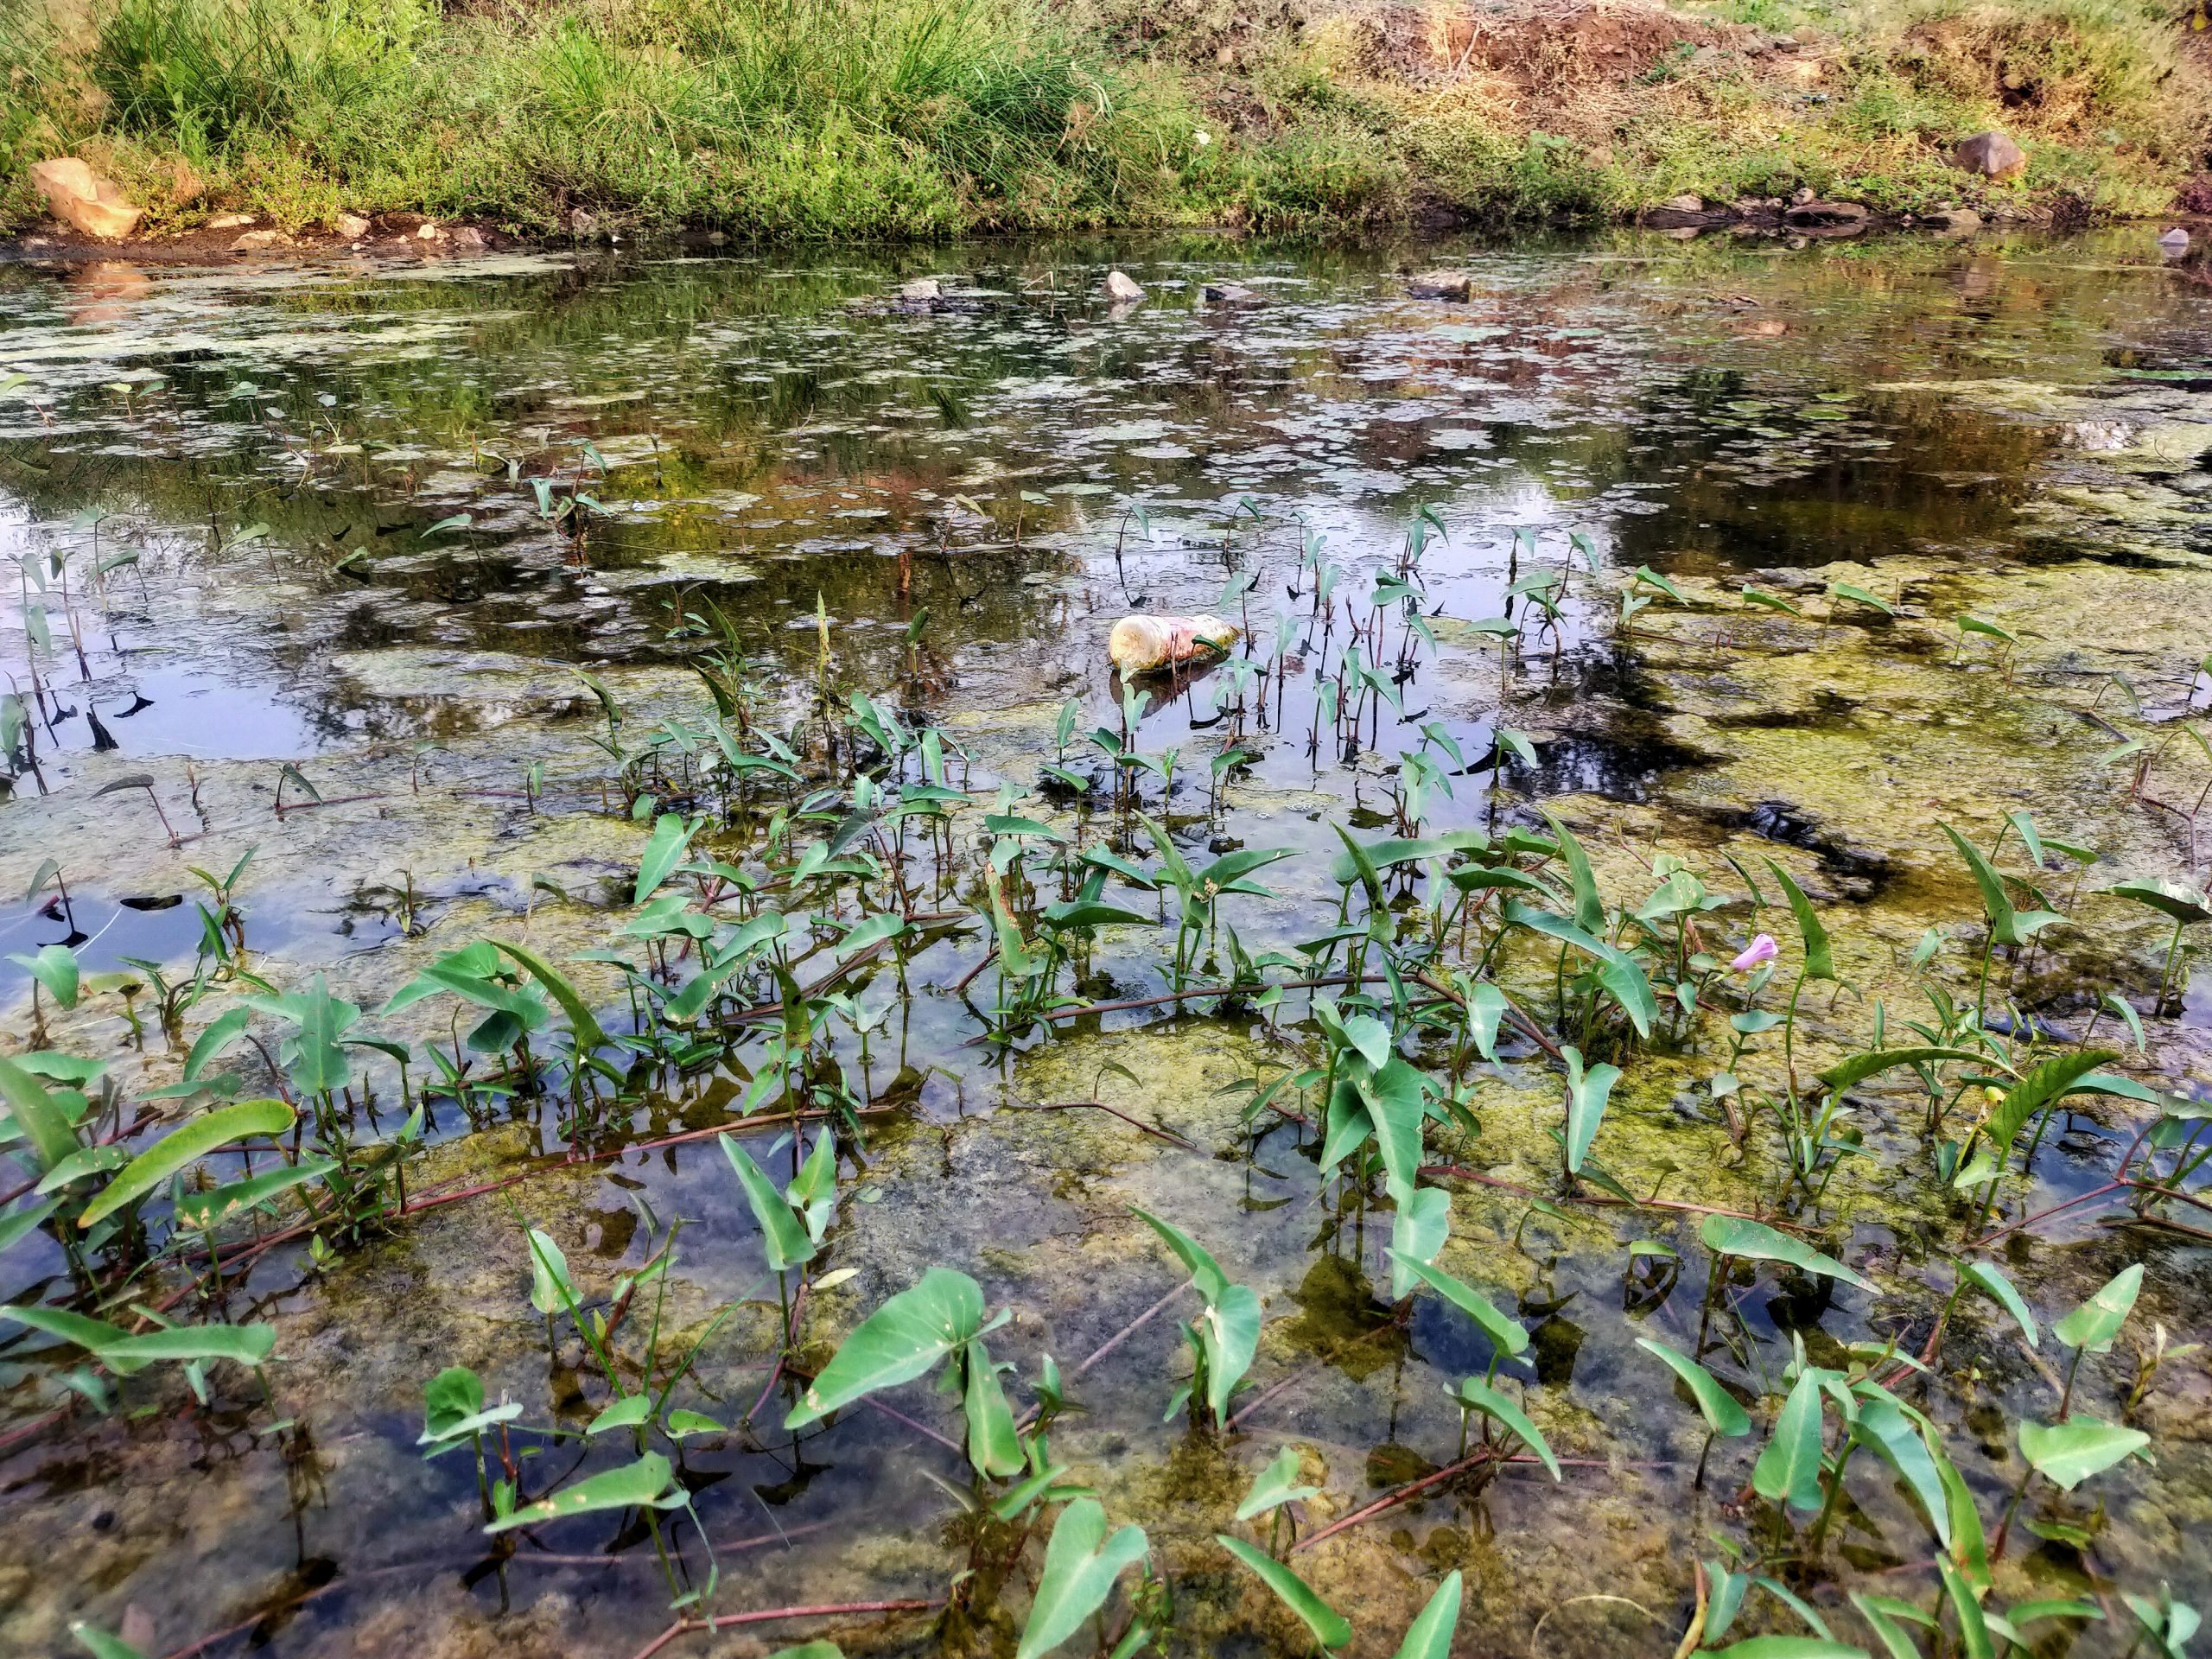 Plastic bottle and water plants in the river